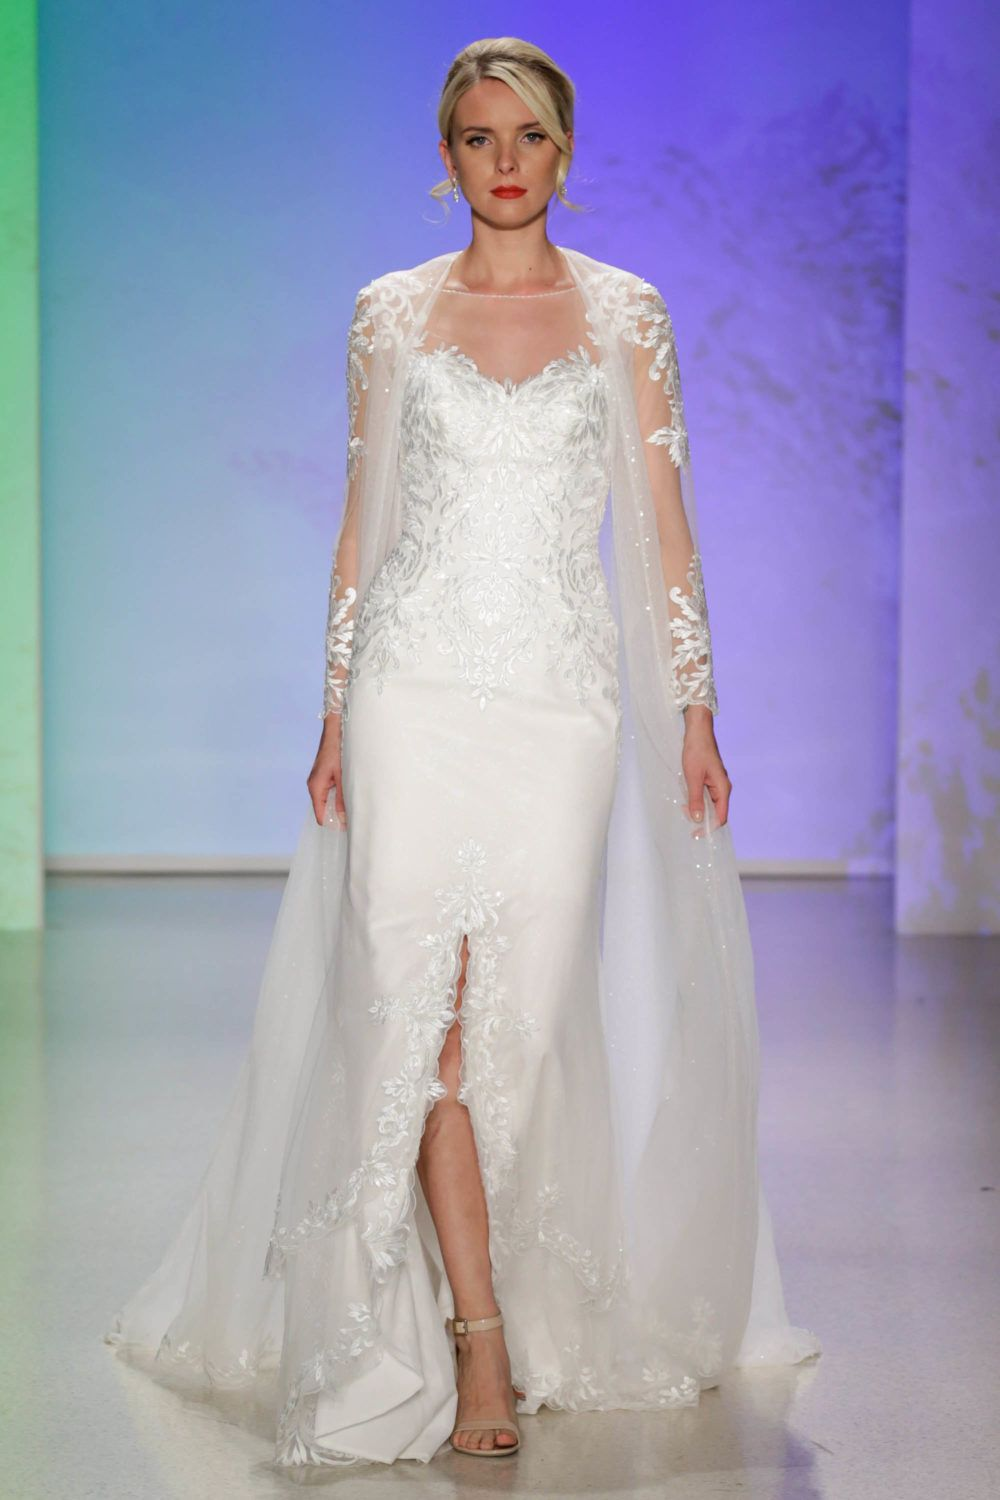 Disney X Alfred Angelo Latest Collection Of Princess Wedding Dresses Is Here